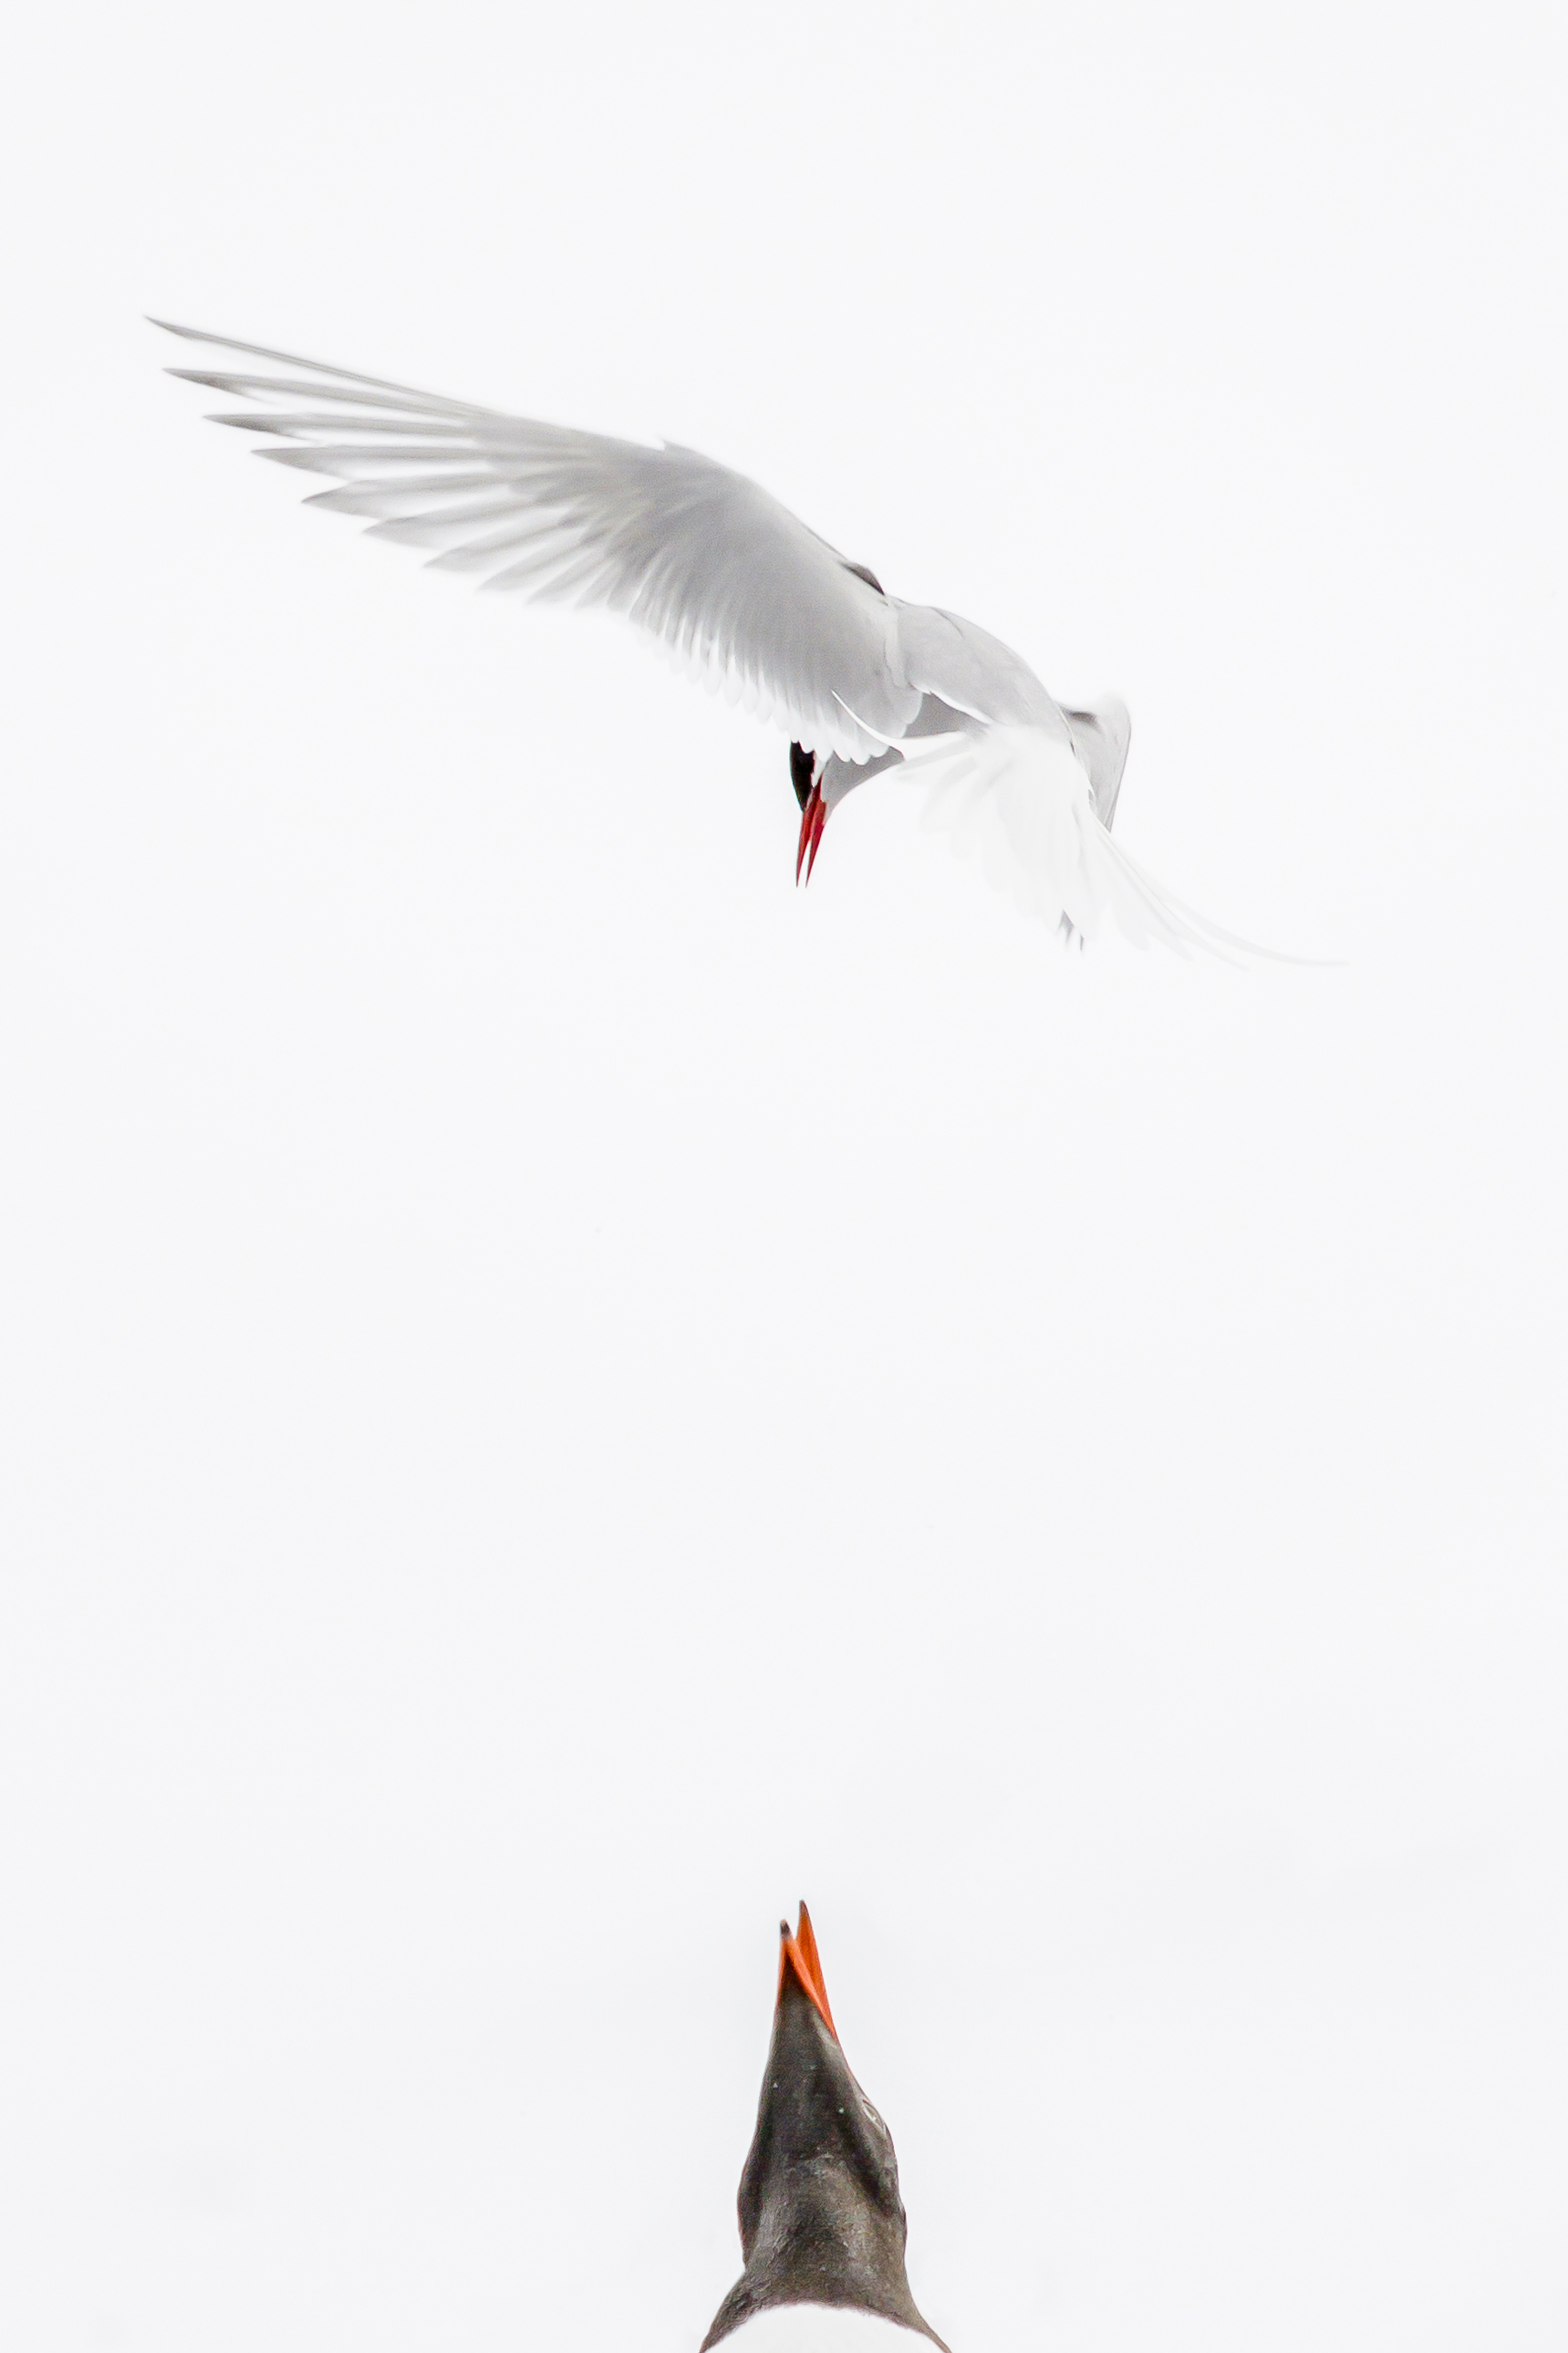 Nature category winner, Ben Jackson, Tiny but mighty